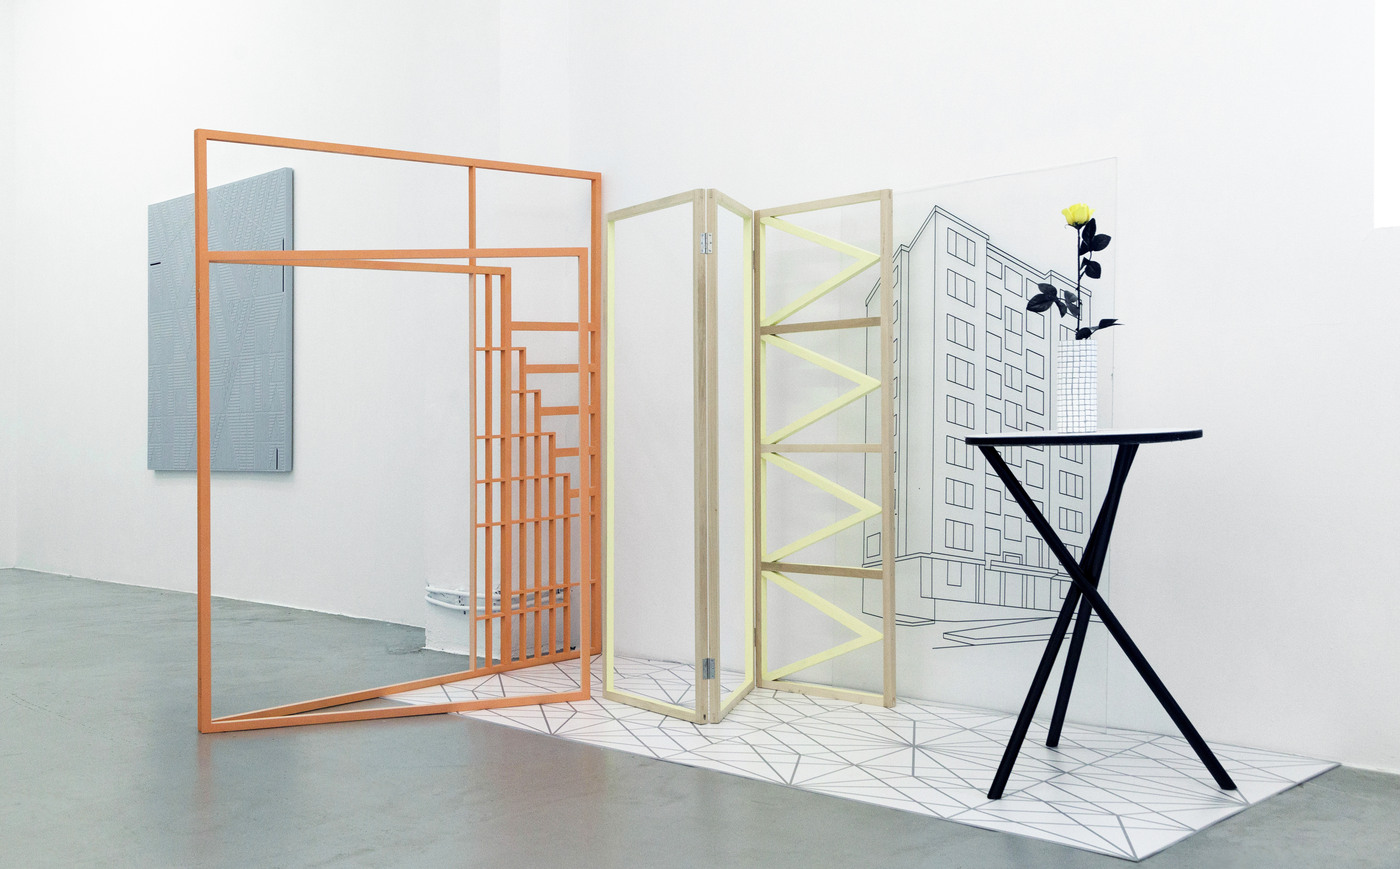 8_Interior_2016_variabledimension_installationwith_wood_forex_ceramics_plastic